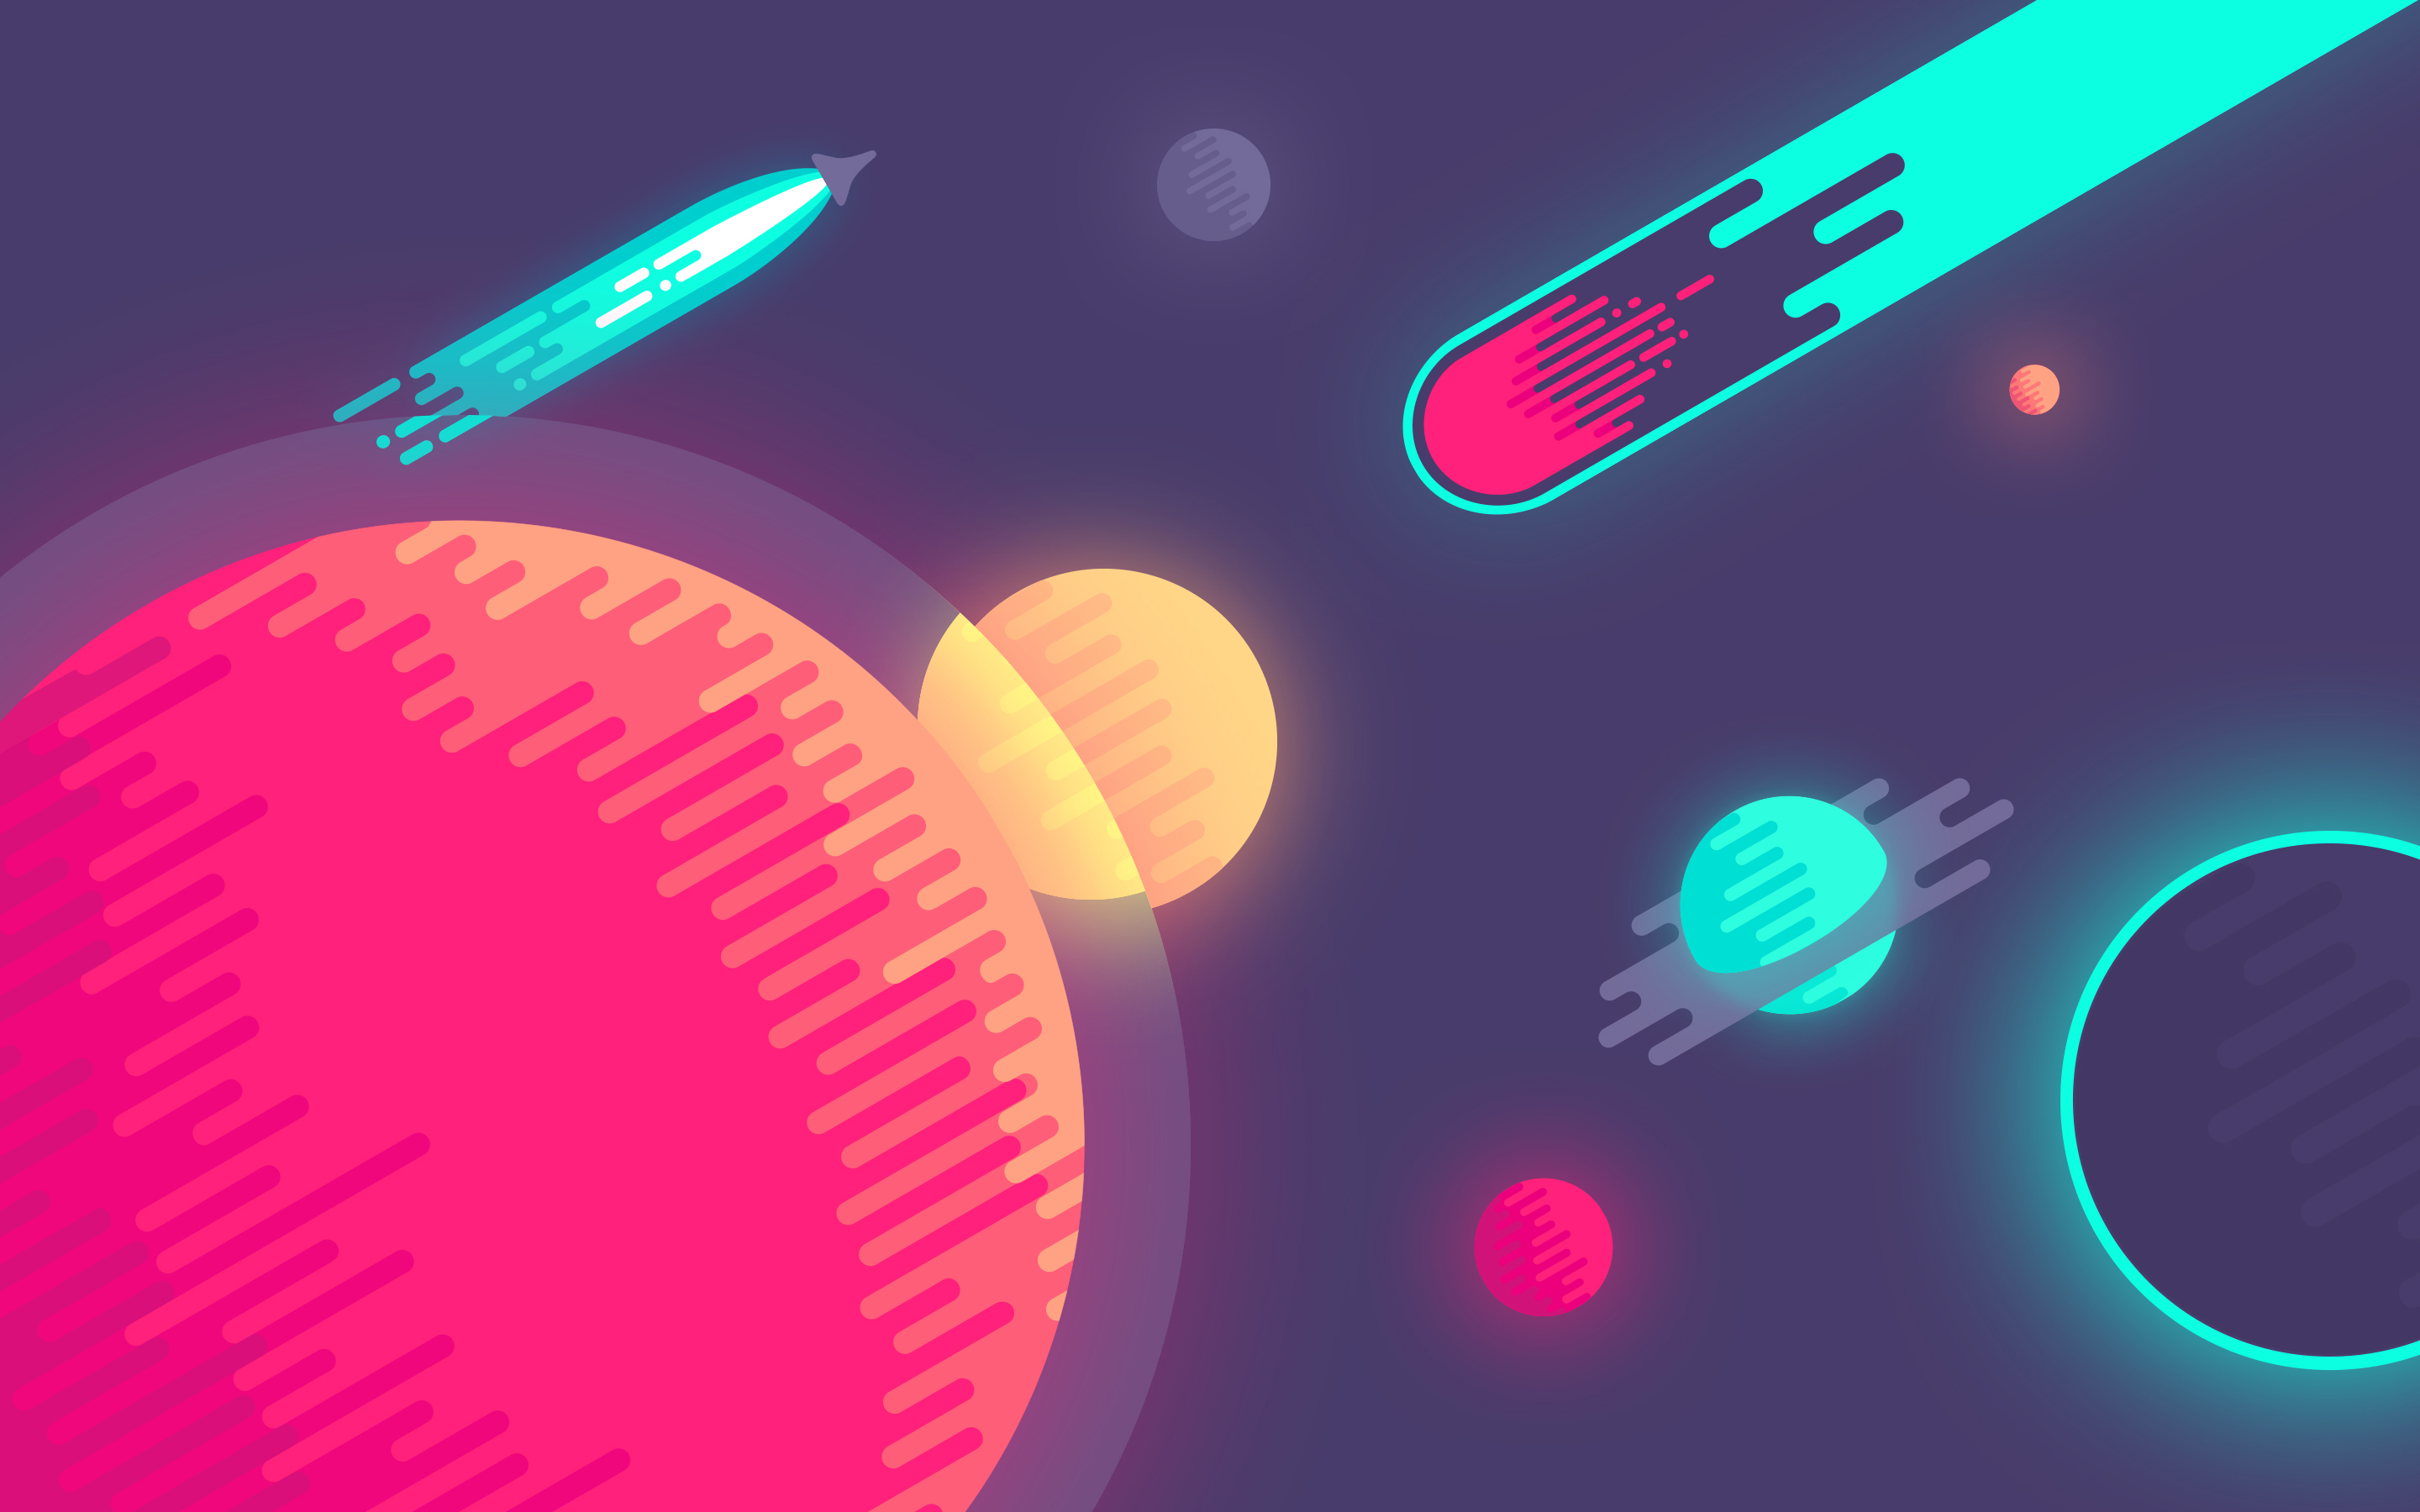 Space Wallpaper 2880x1800